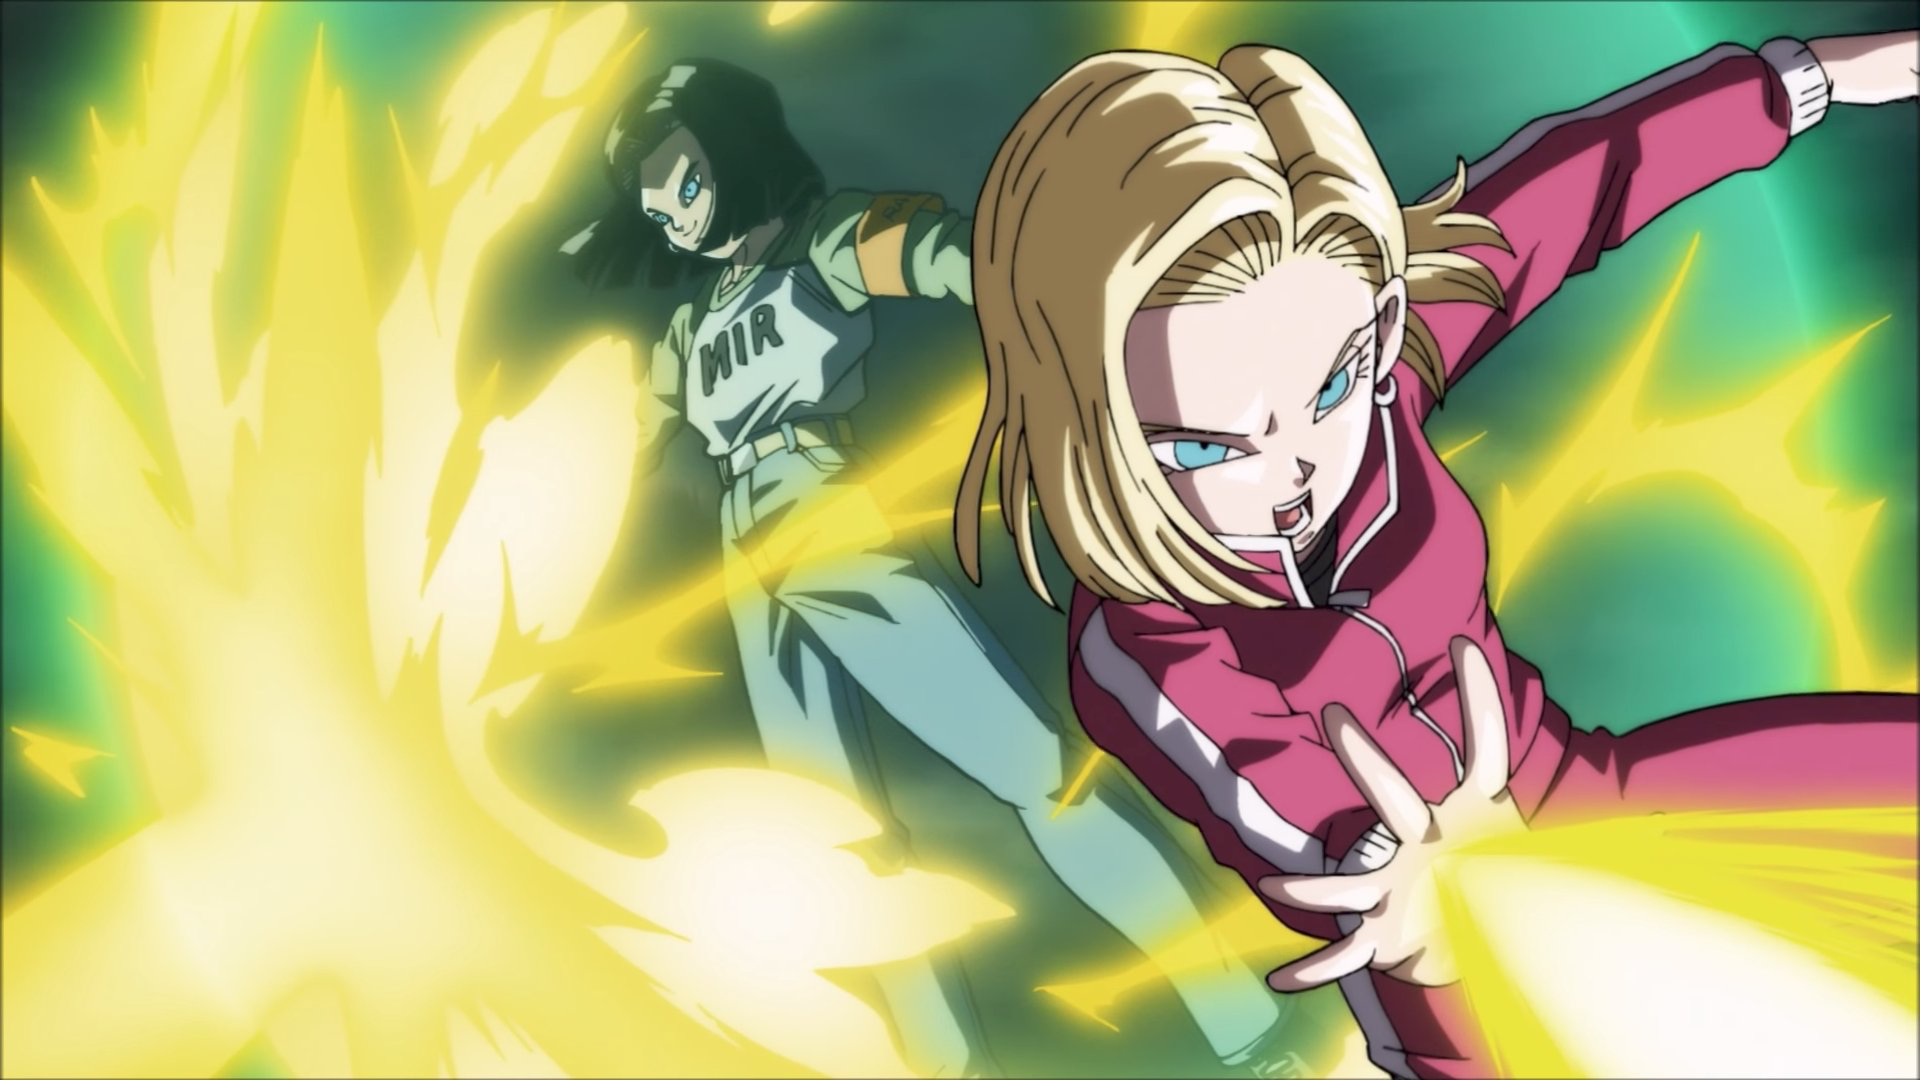 Android 17 And Android 18 Anime Dragon Ball Super Anime Dragon